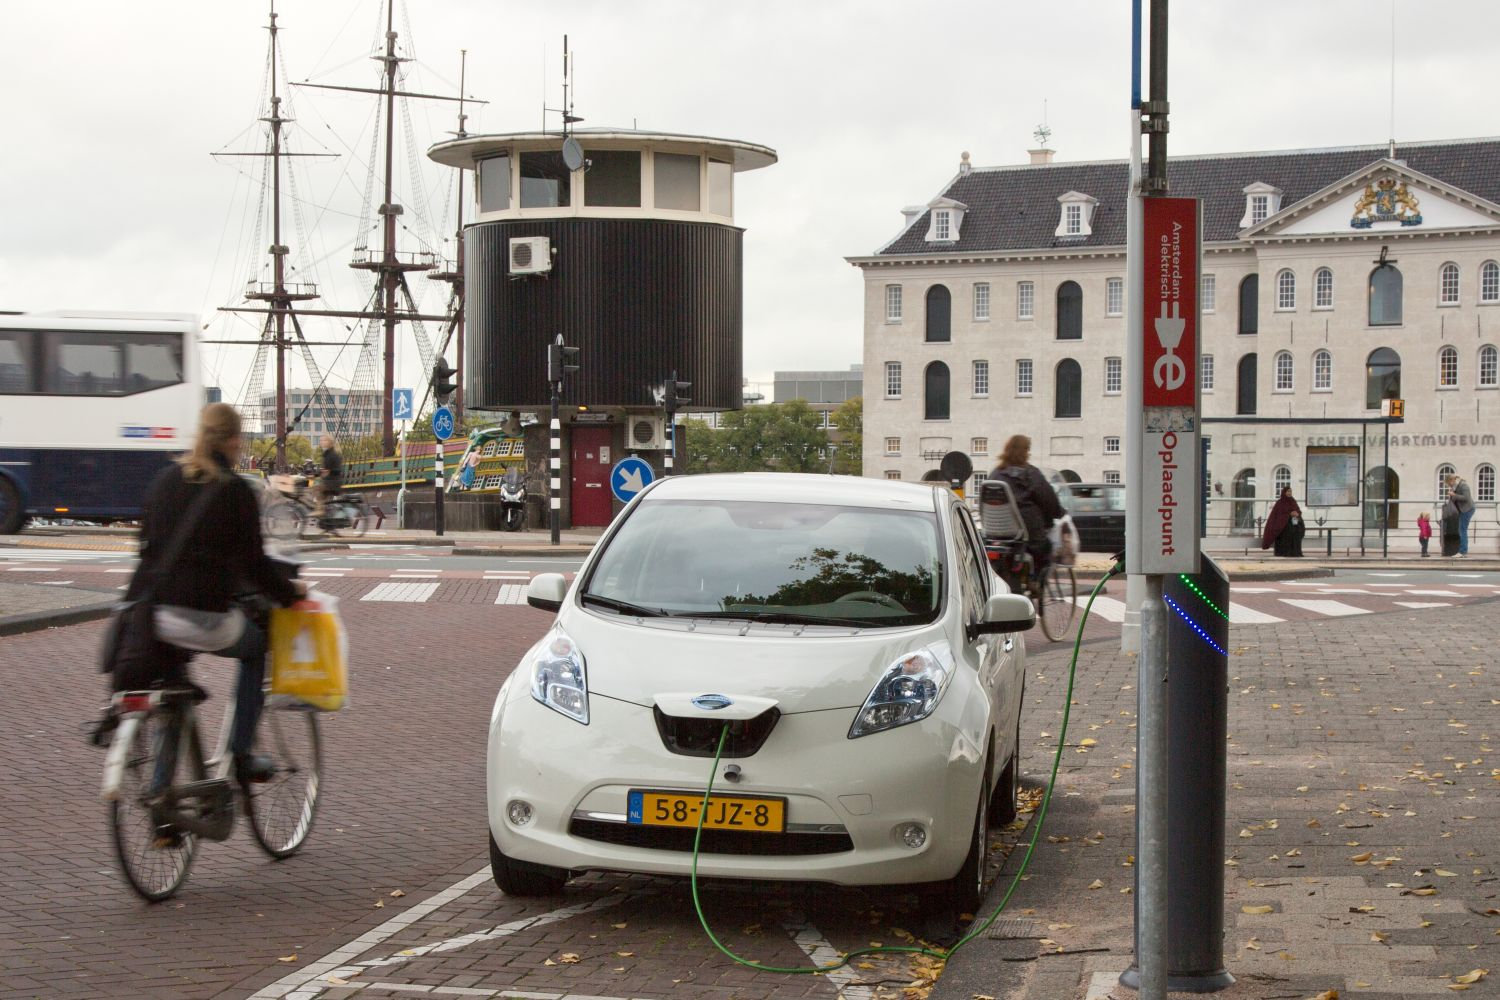 Innovation mission will highlight Dutch expertise in smart mobility, transportation